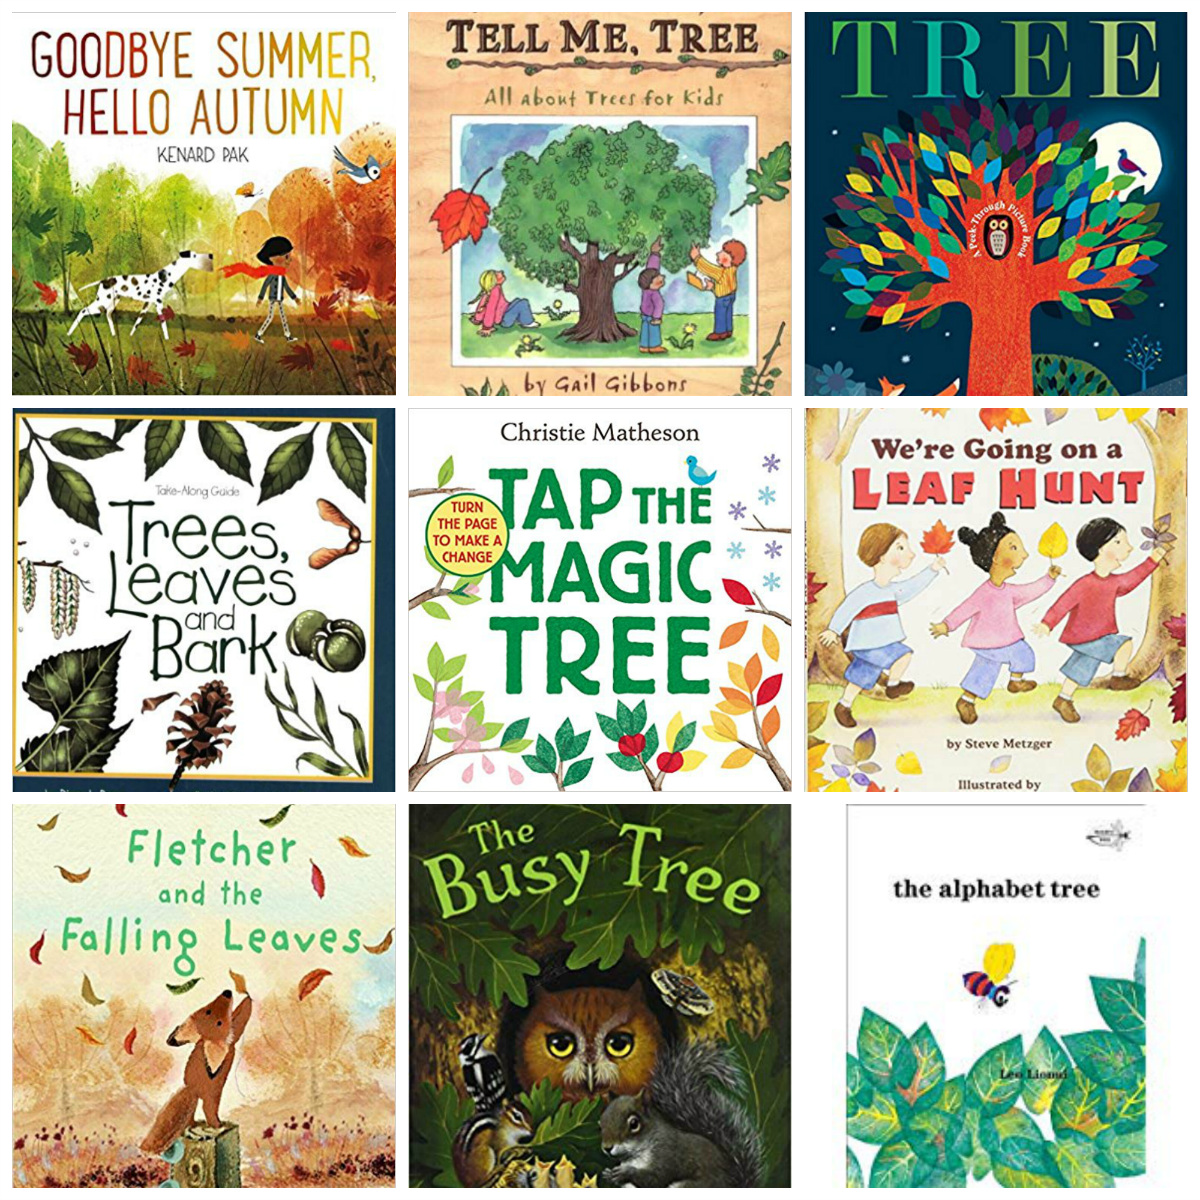 Preschool Books About Trees and Fall Leaves